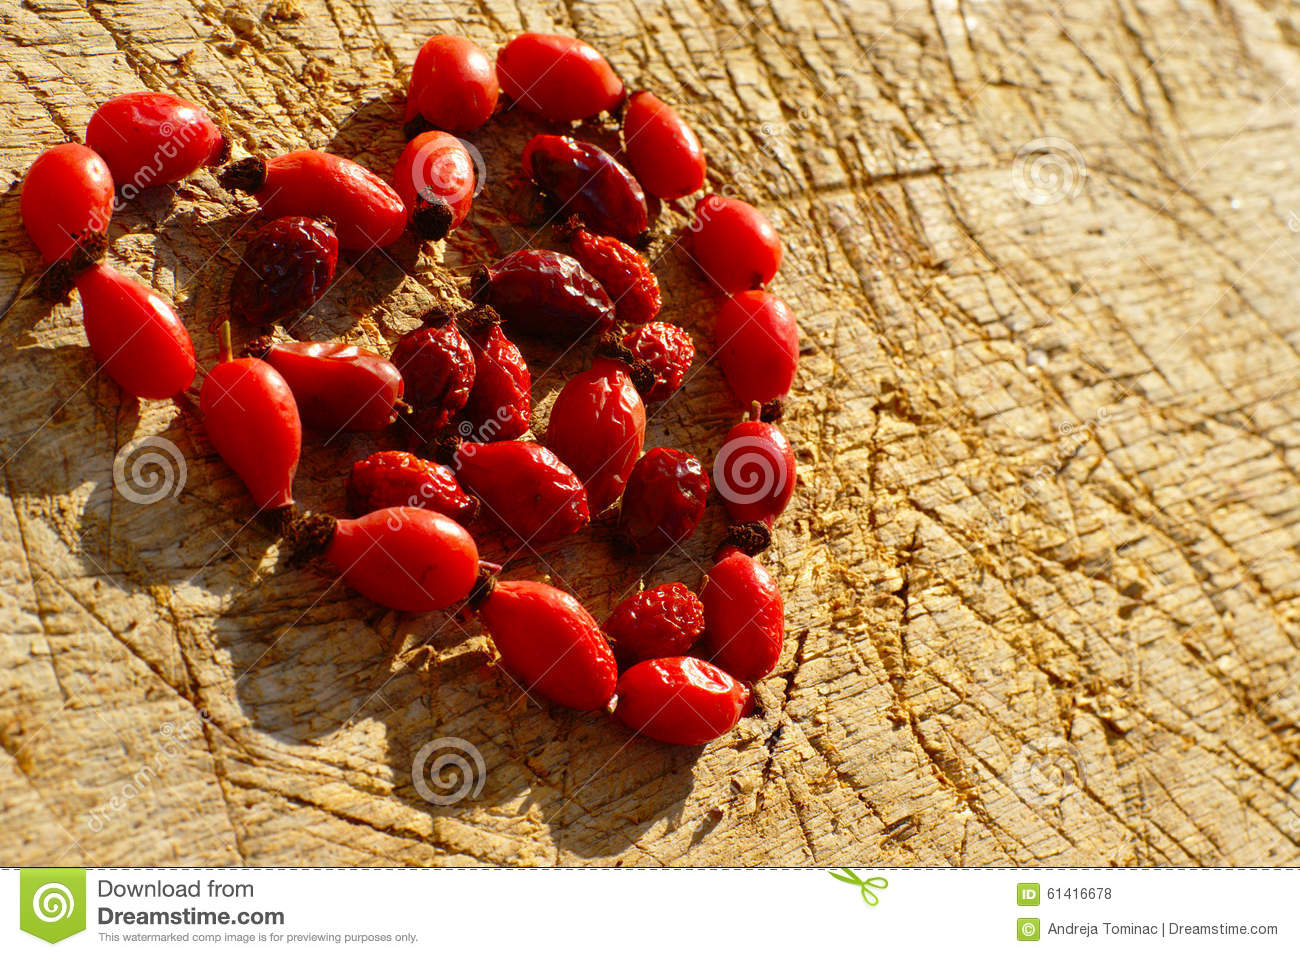 how to eat dried rose hips